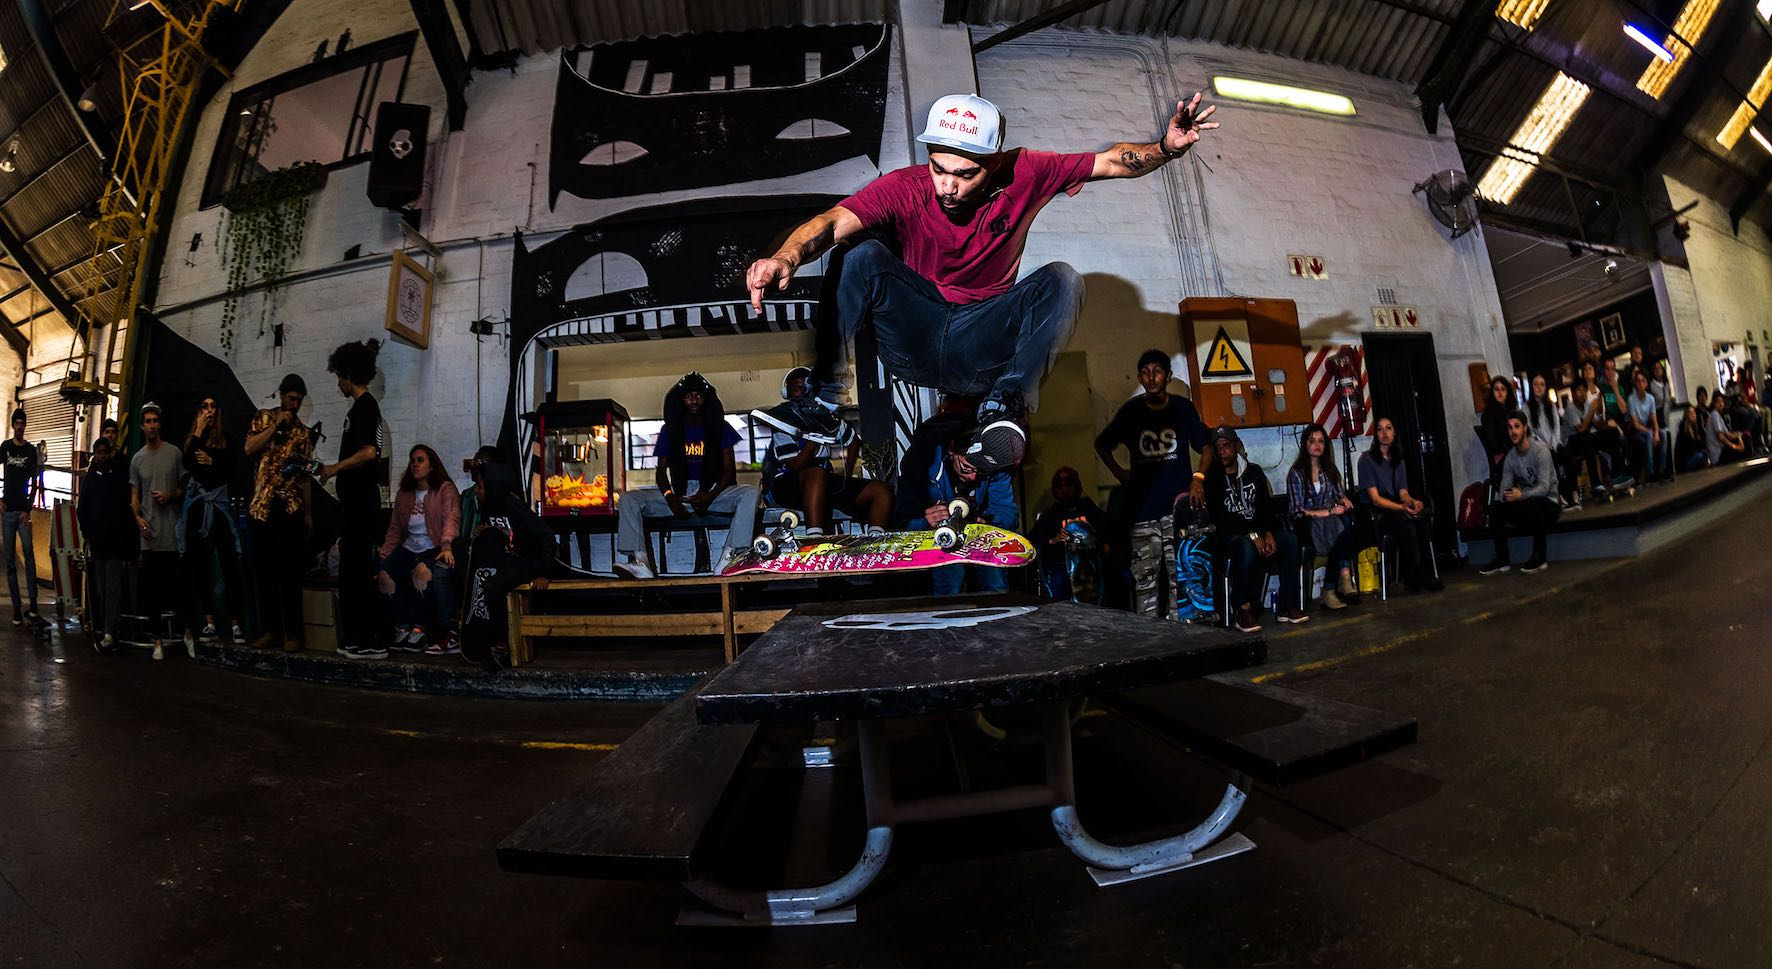 Moses Adams taking 2nd at the Winter Jam skateboarding contest